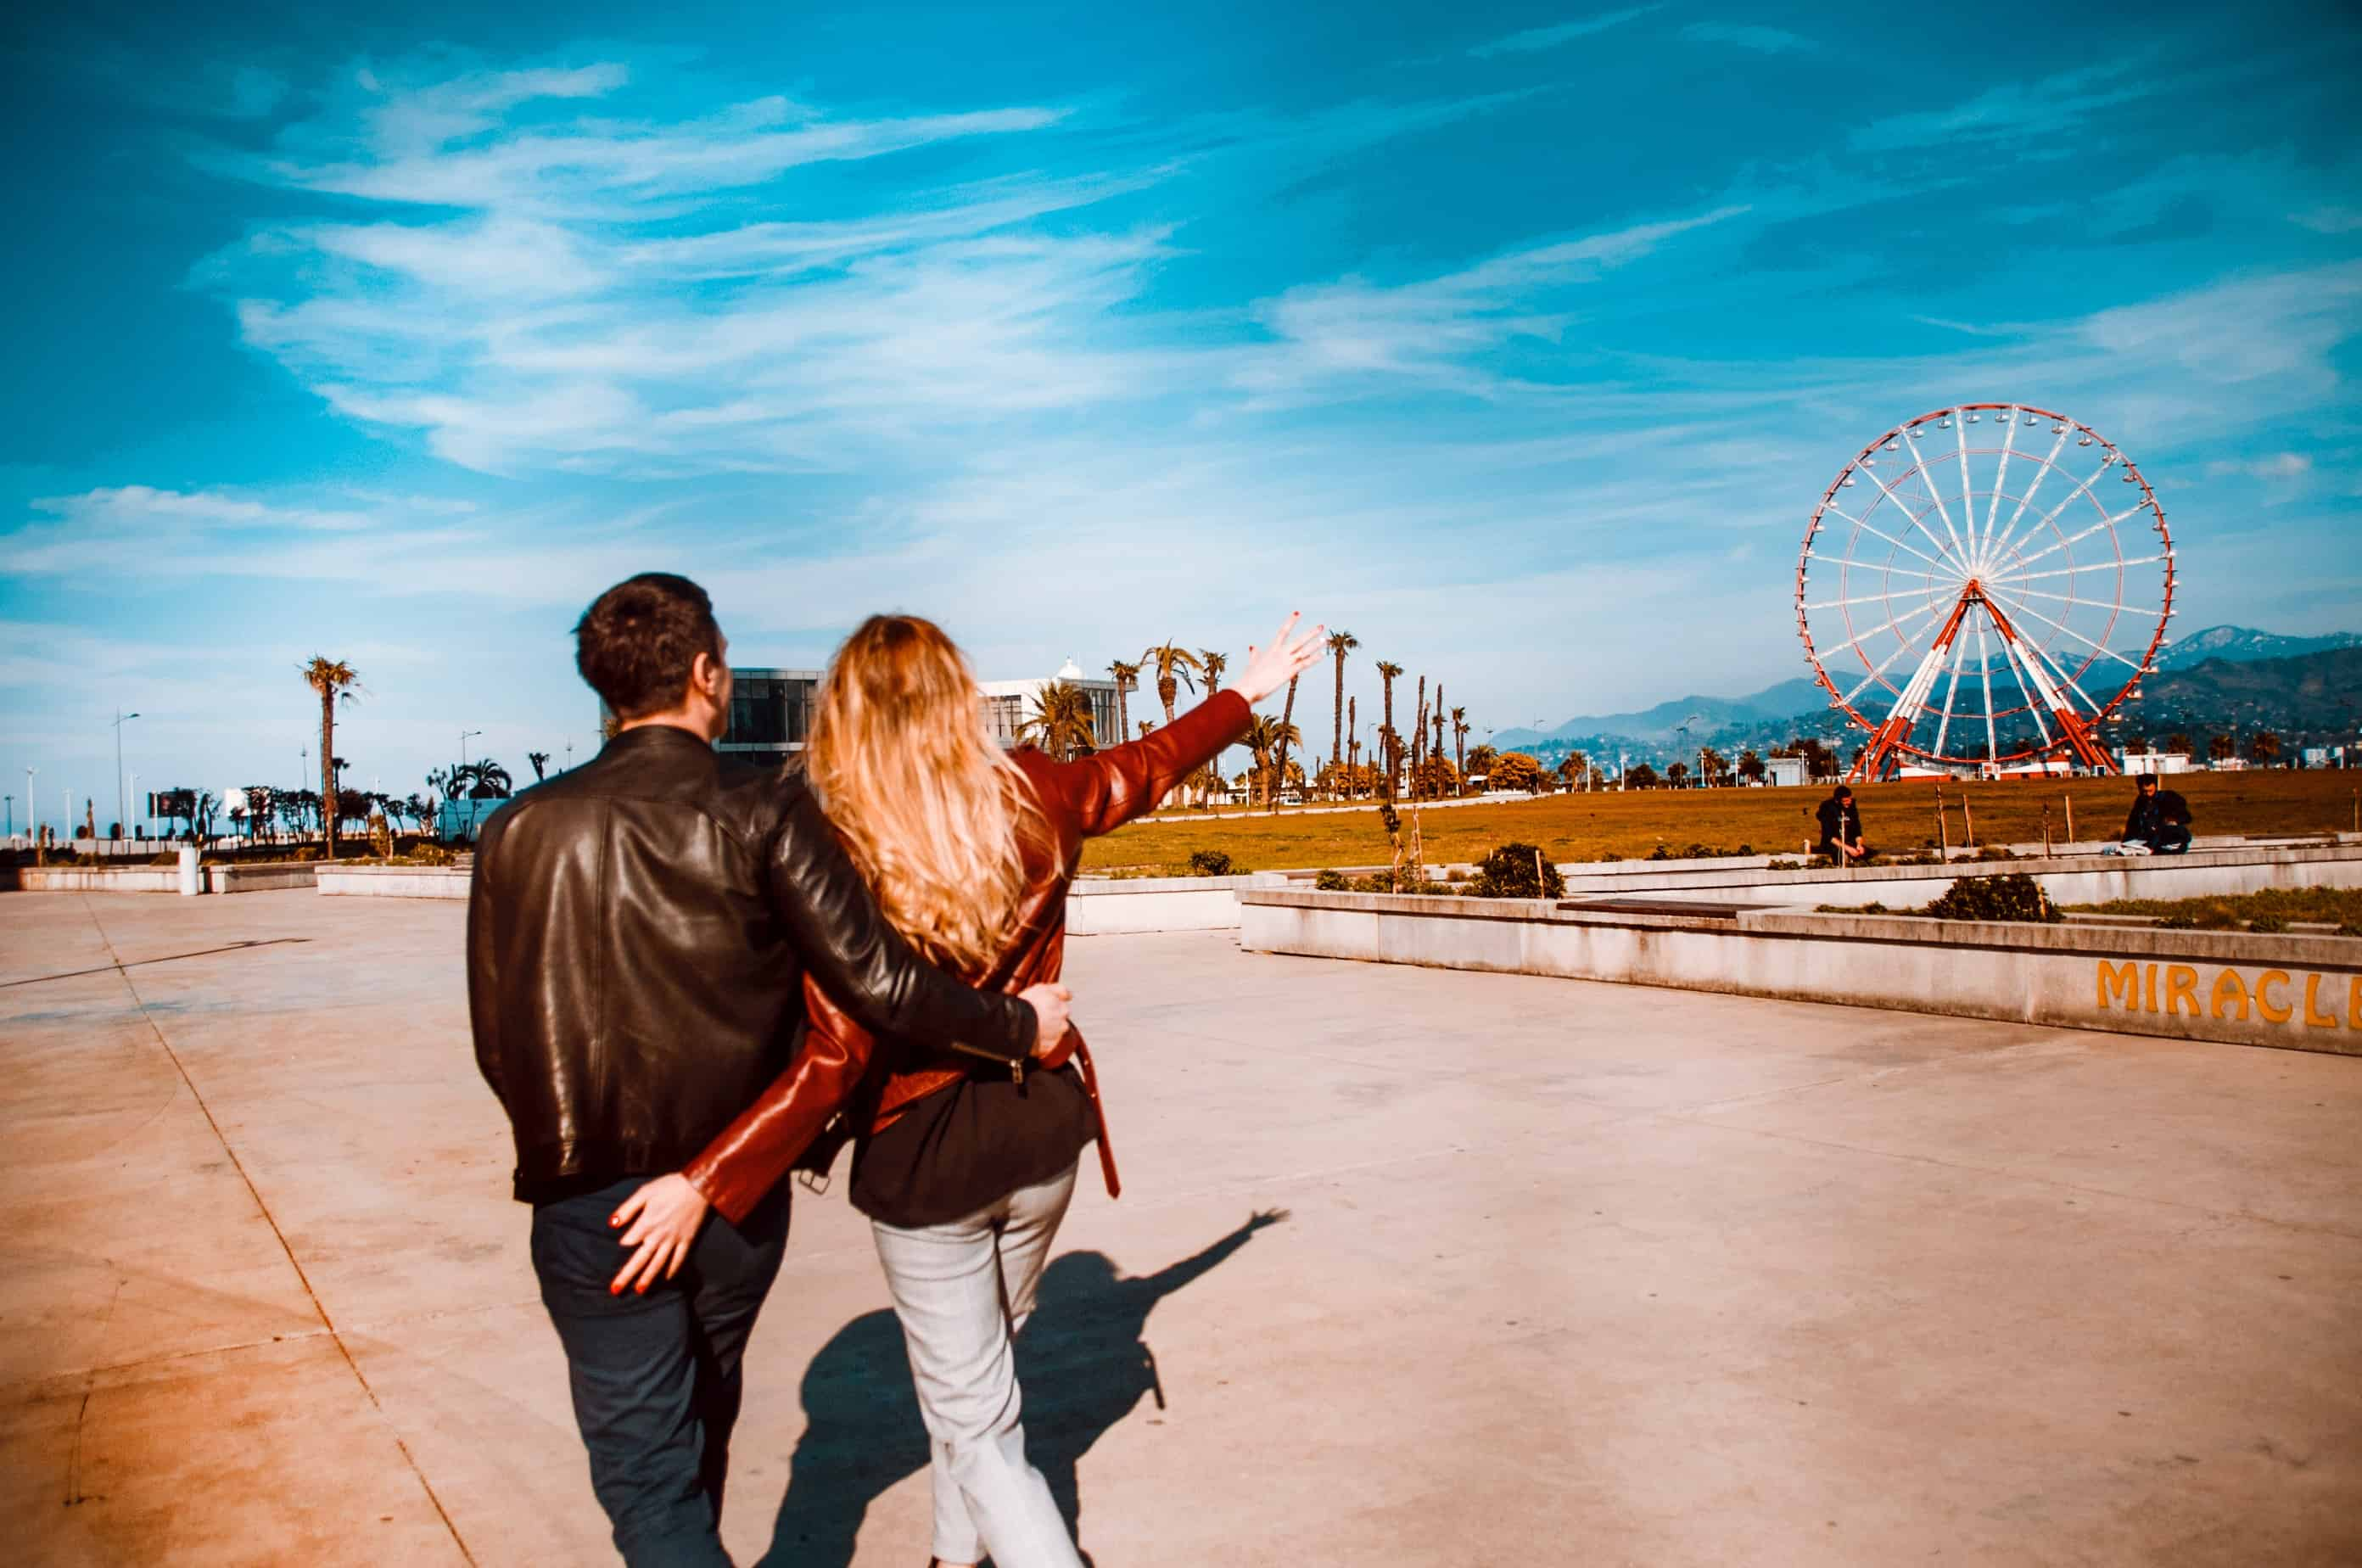 She's Not TRULY Yours FOREVER Unless She Does These 12 'Clingy' Things